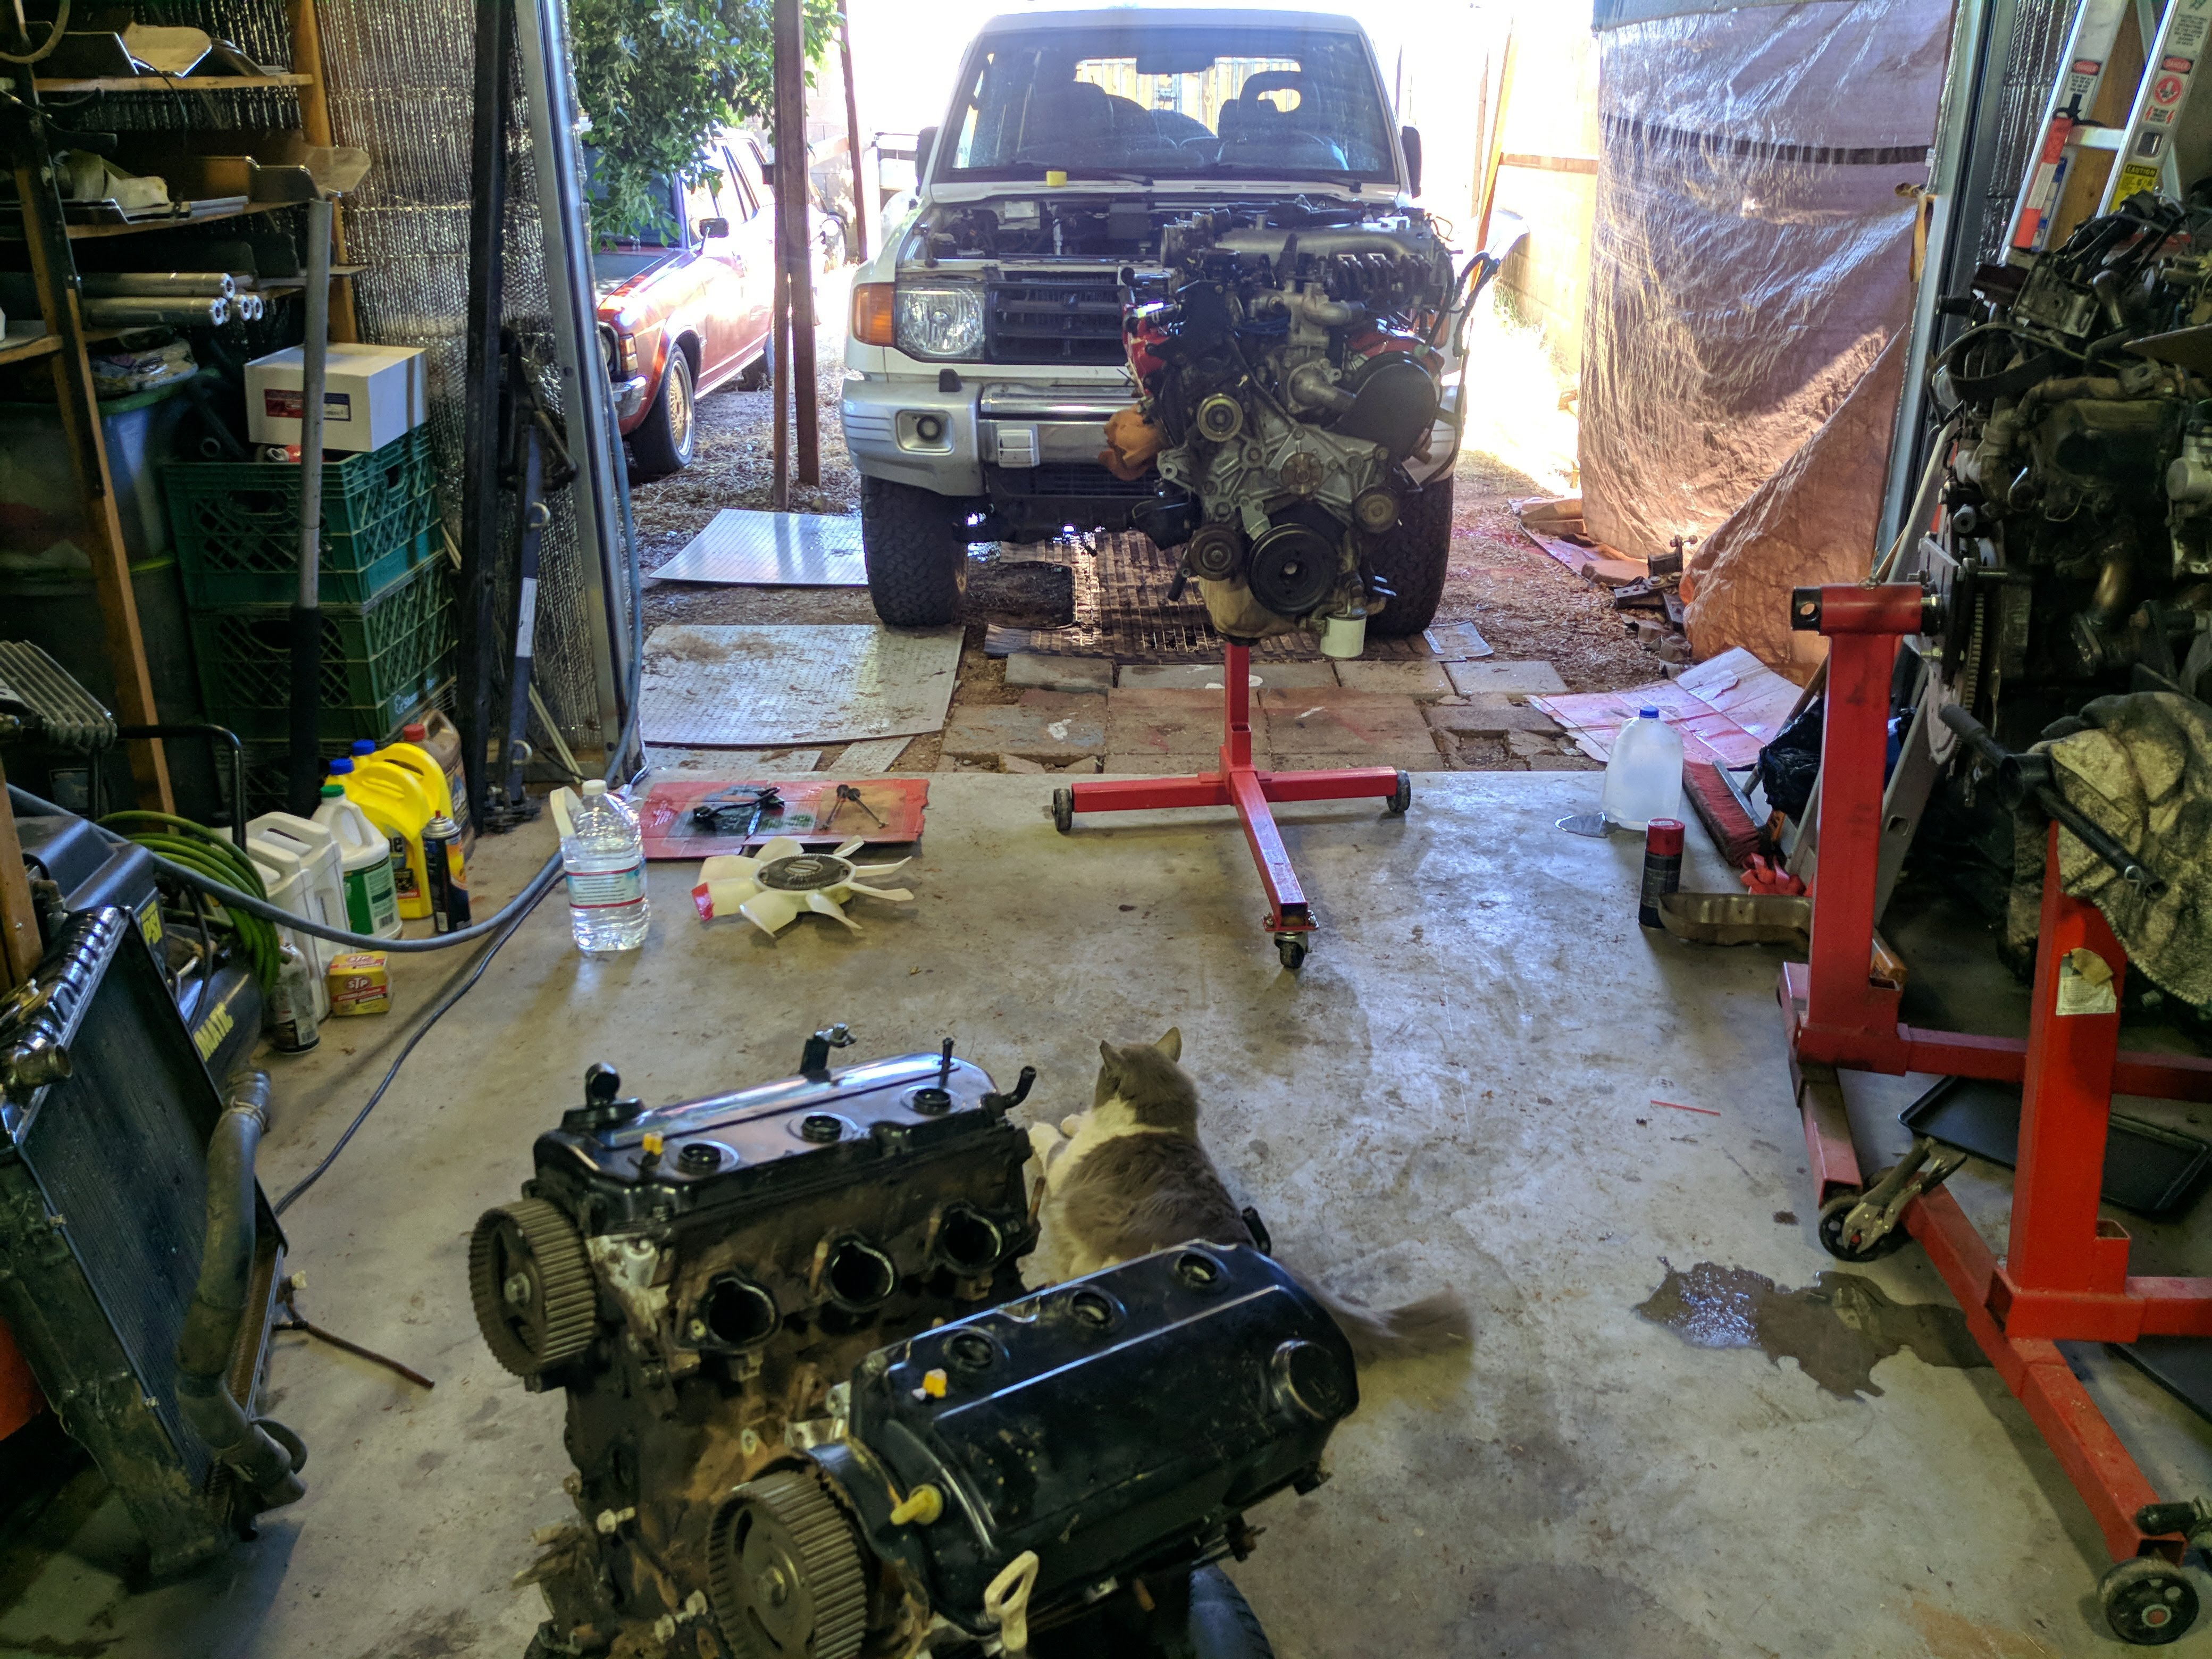 Old engine will be rebuilt.